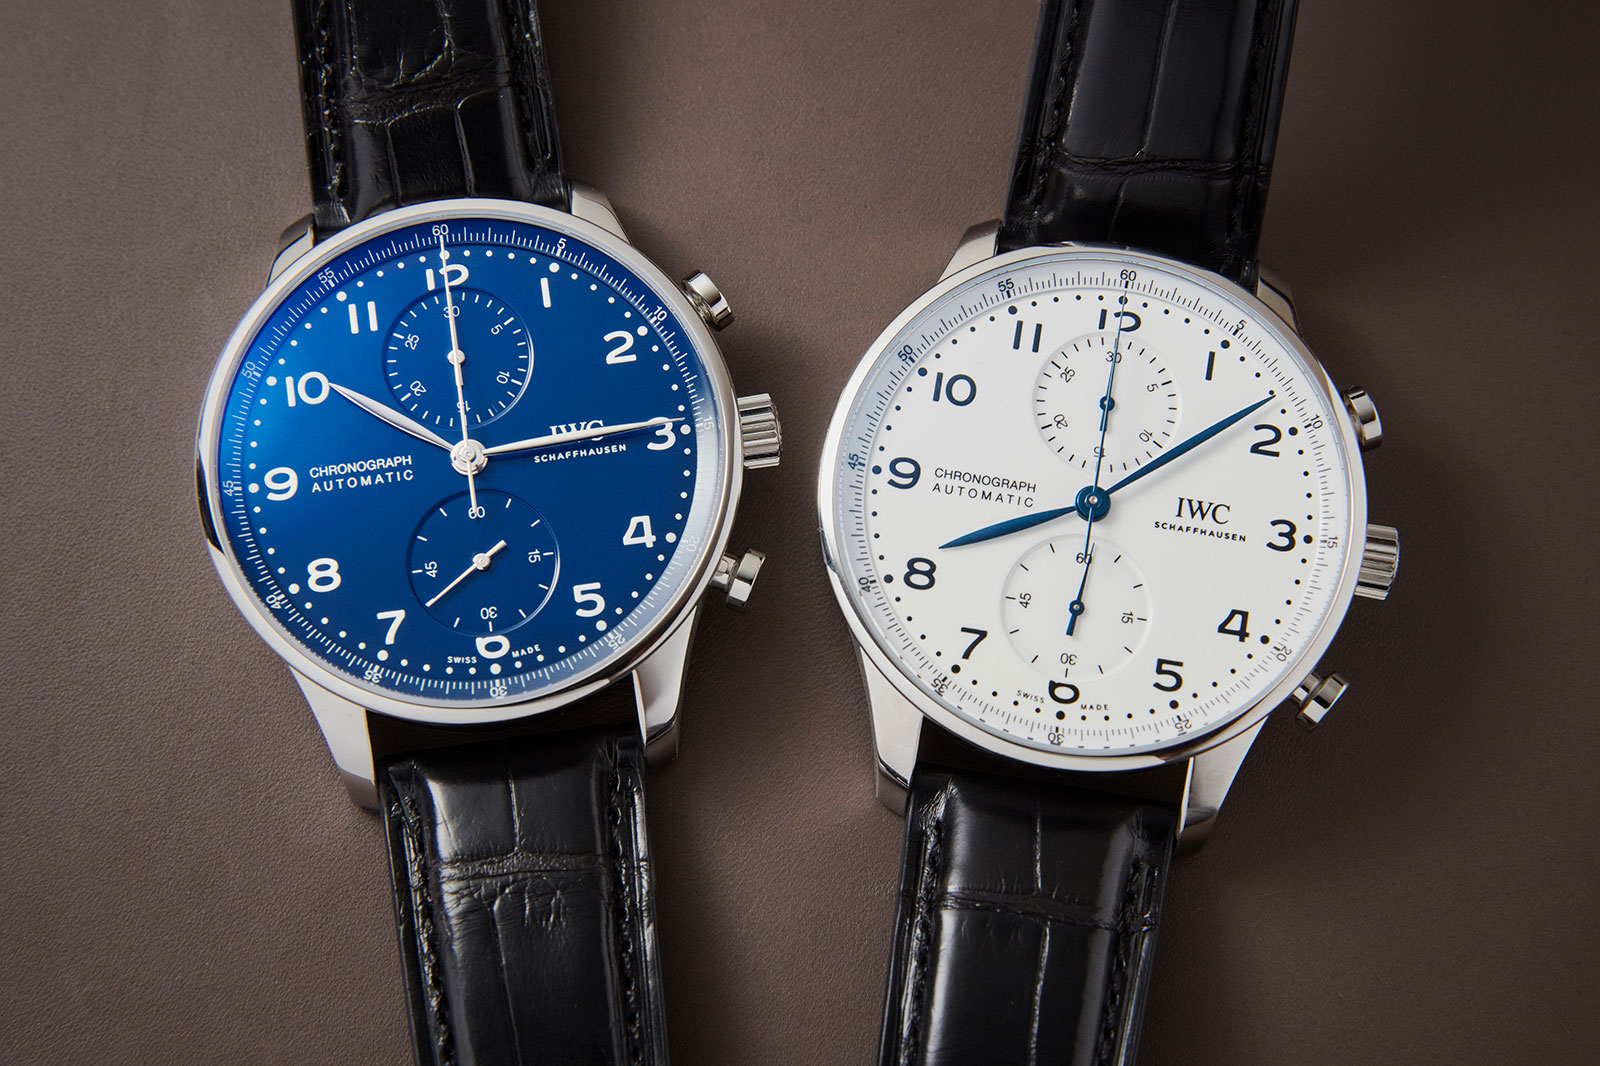 IWC Portugieser Chronograph 150 Years 2